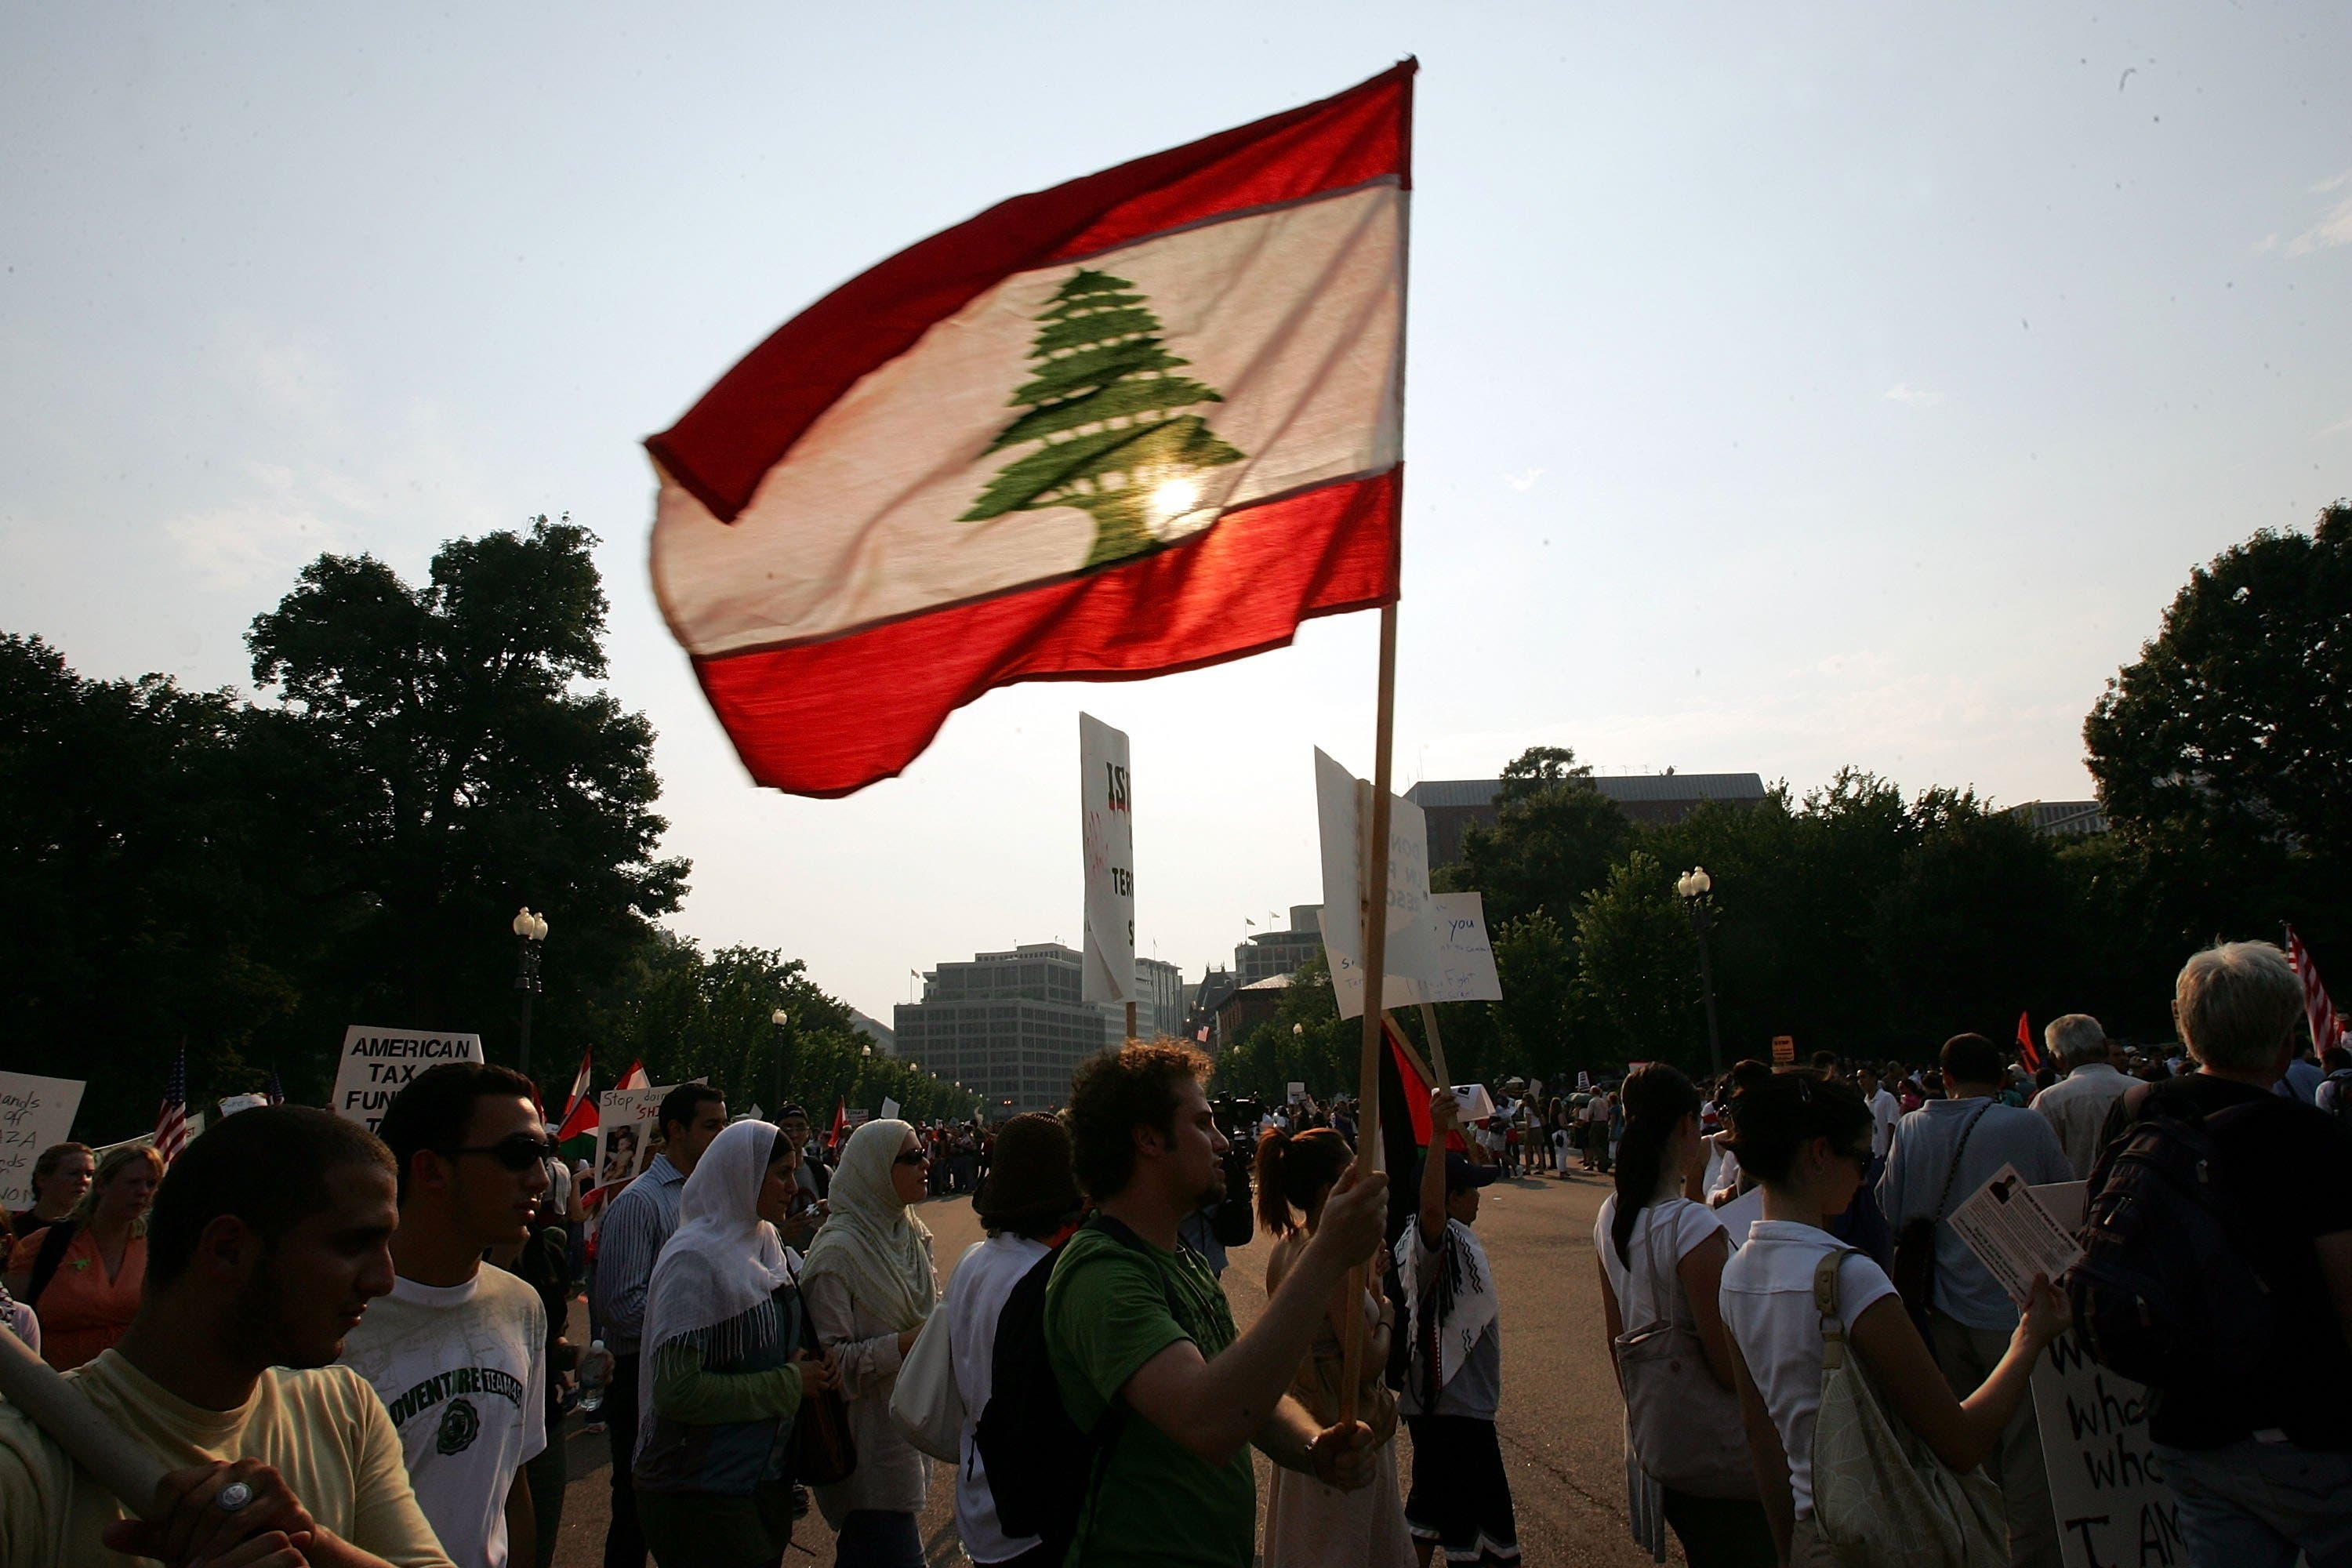 Lebanon's never been short of causes for protest: Cedar Revolution, and anti Israeli campaigns.